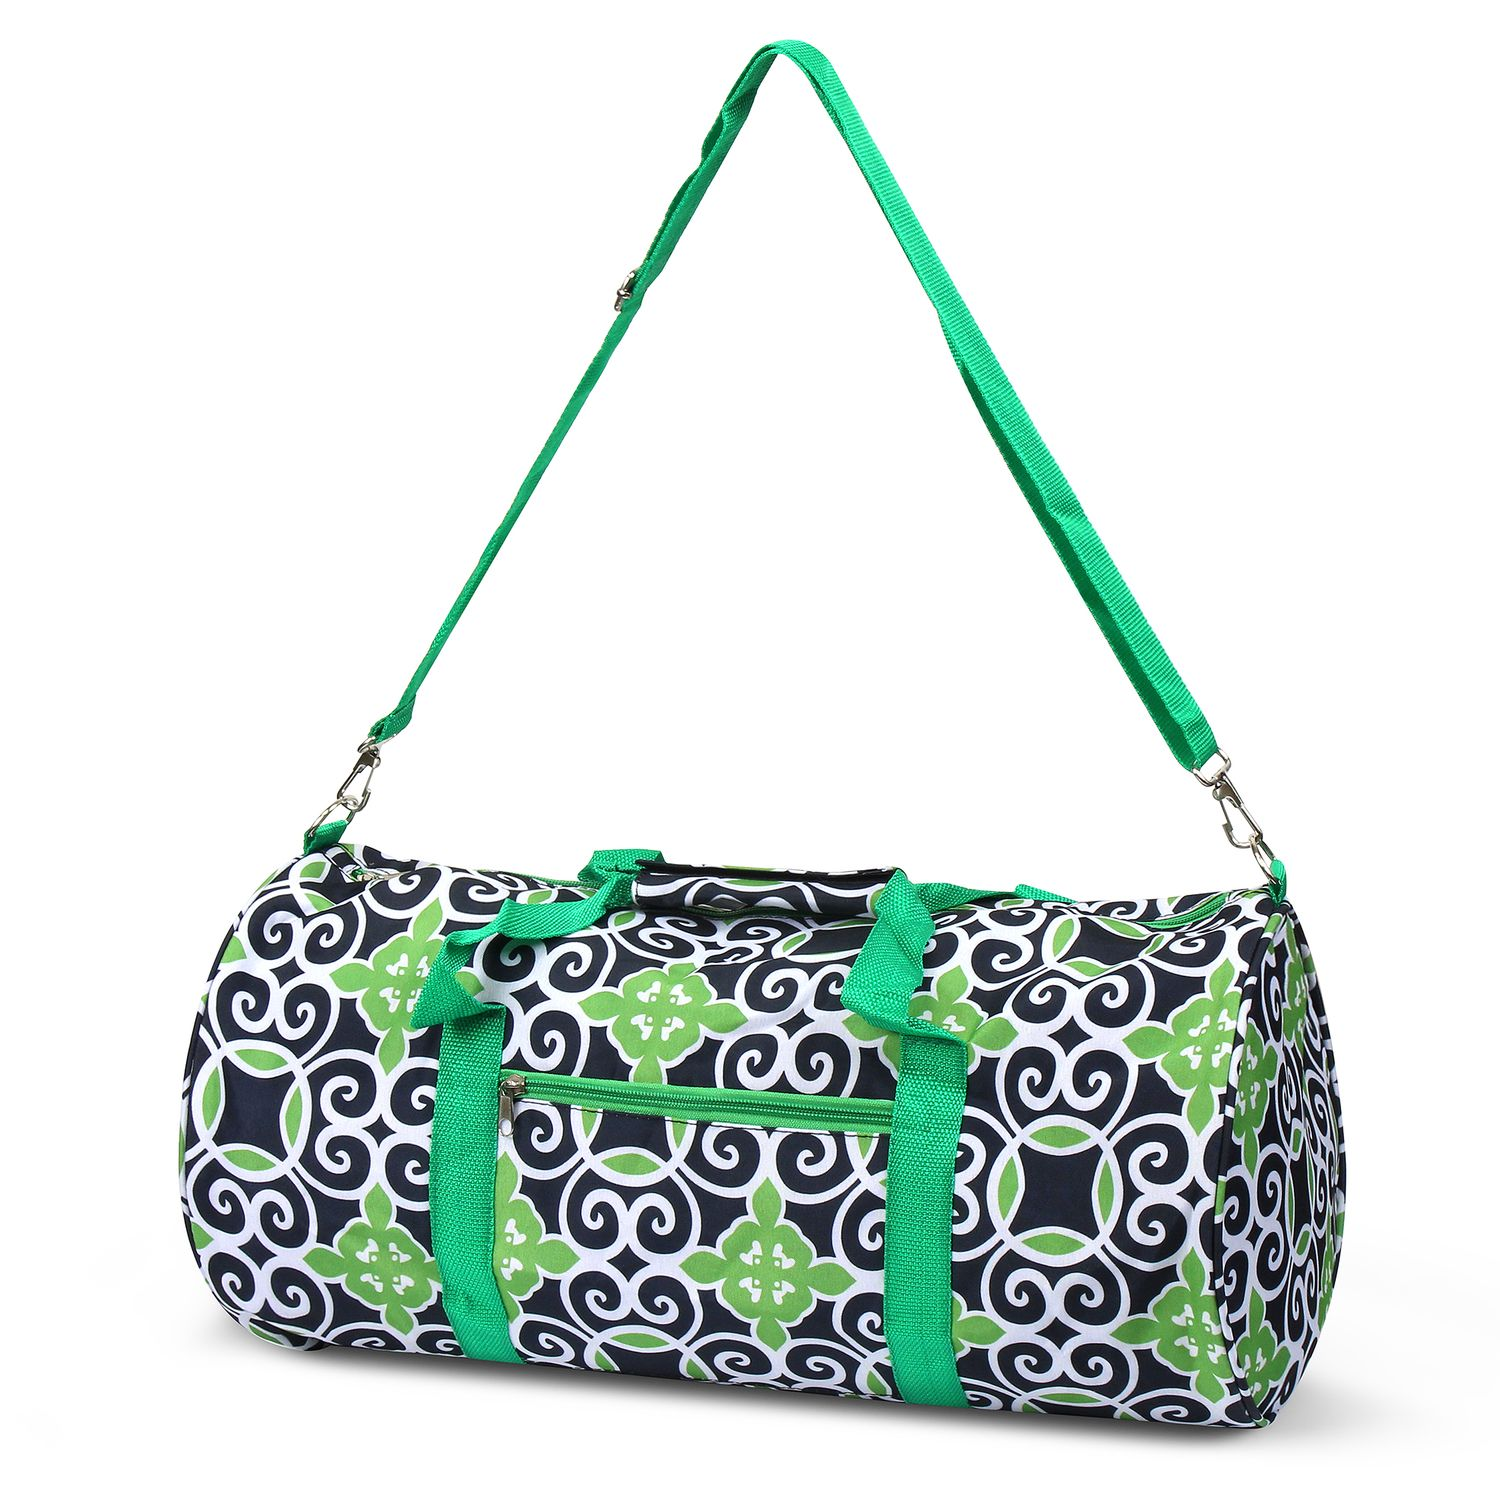 Zodaca Classic Style Duffel Travel Gym Bag Shoulder Tote Carry Bag for Camping Hiking by Zodaca